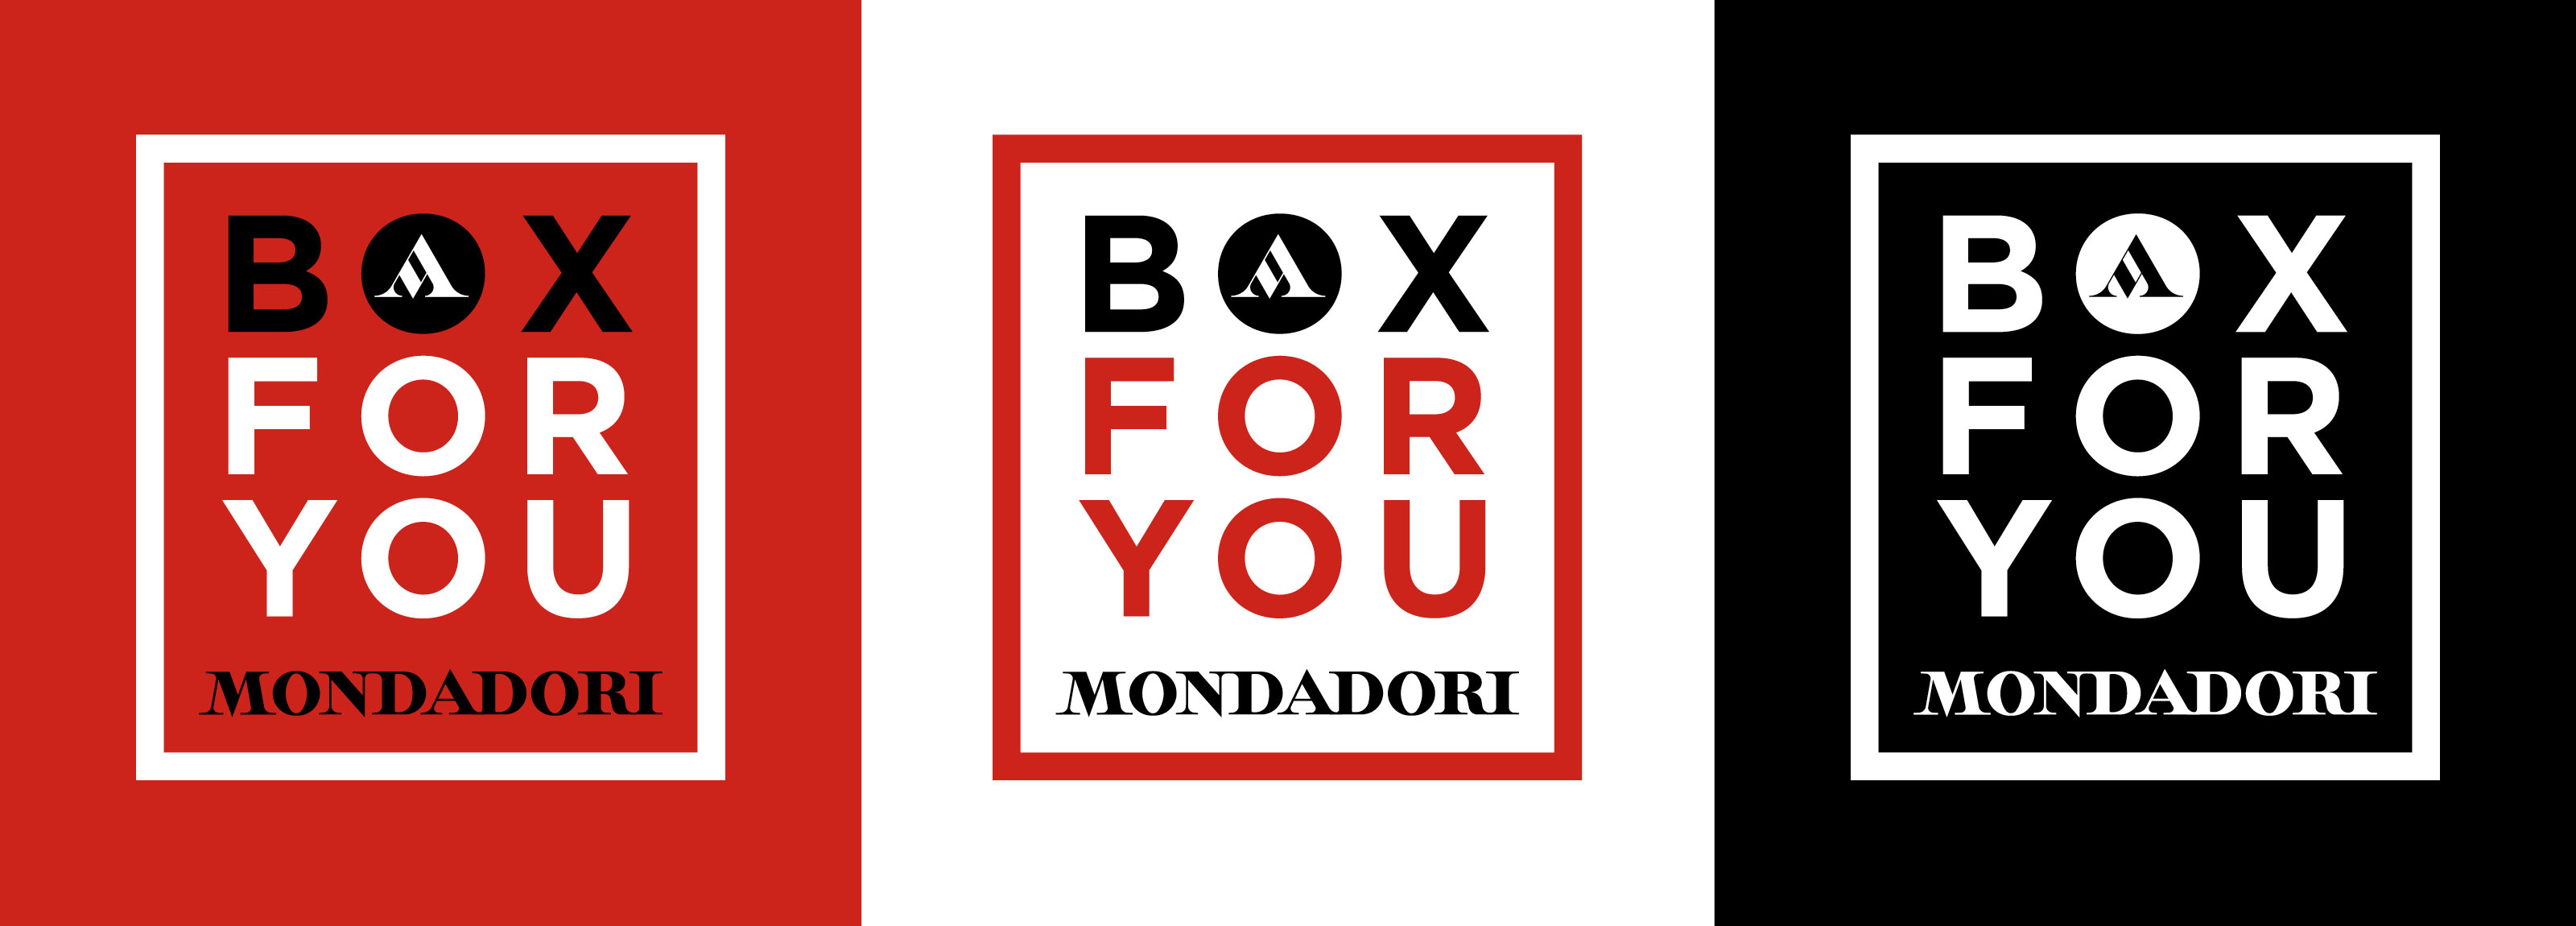 Hangar Design Group created a logo for the Mondadori Group